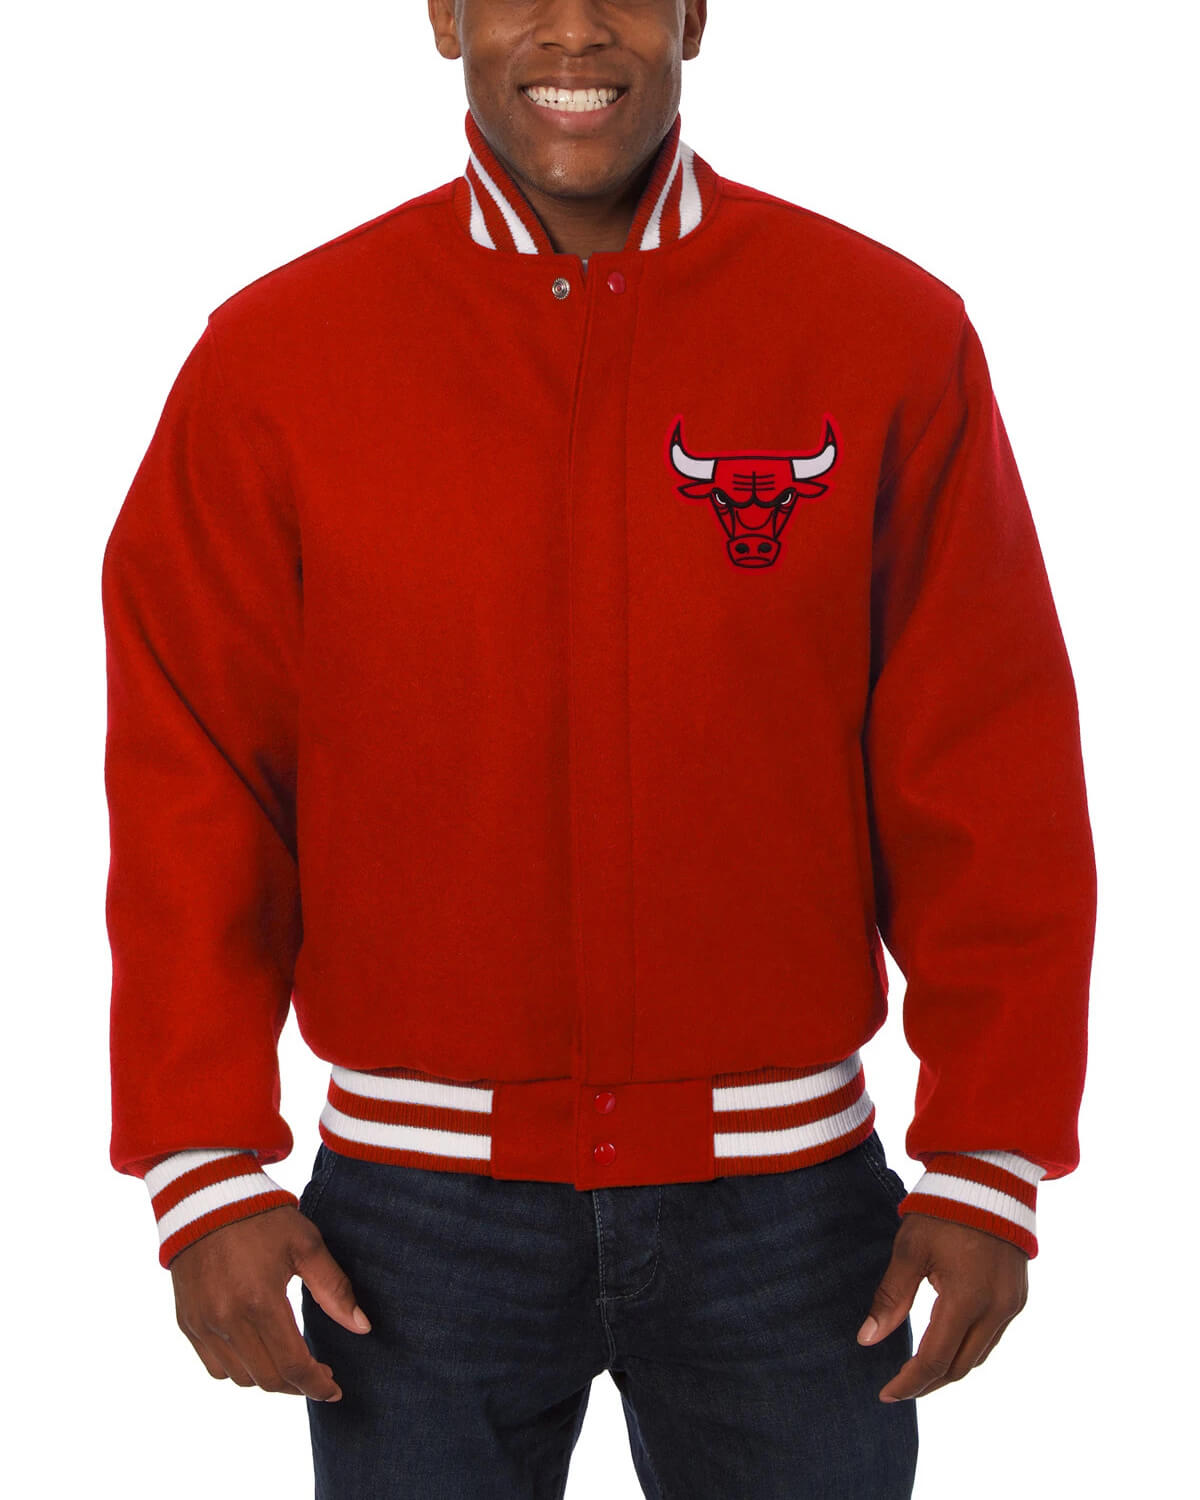 Red Chicago Bulls Embroidered Wool Jacket